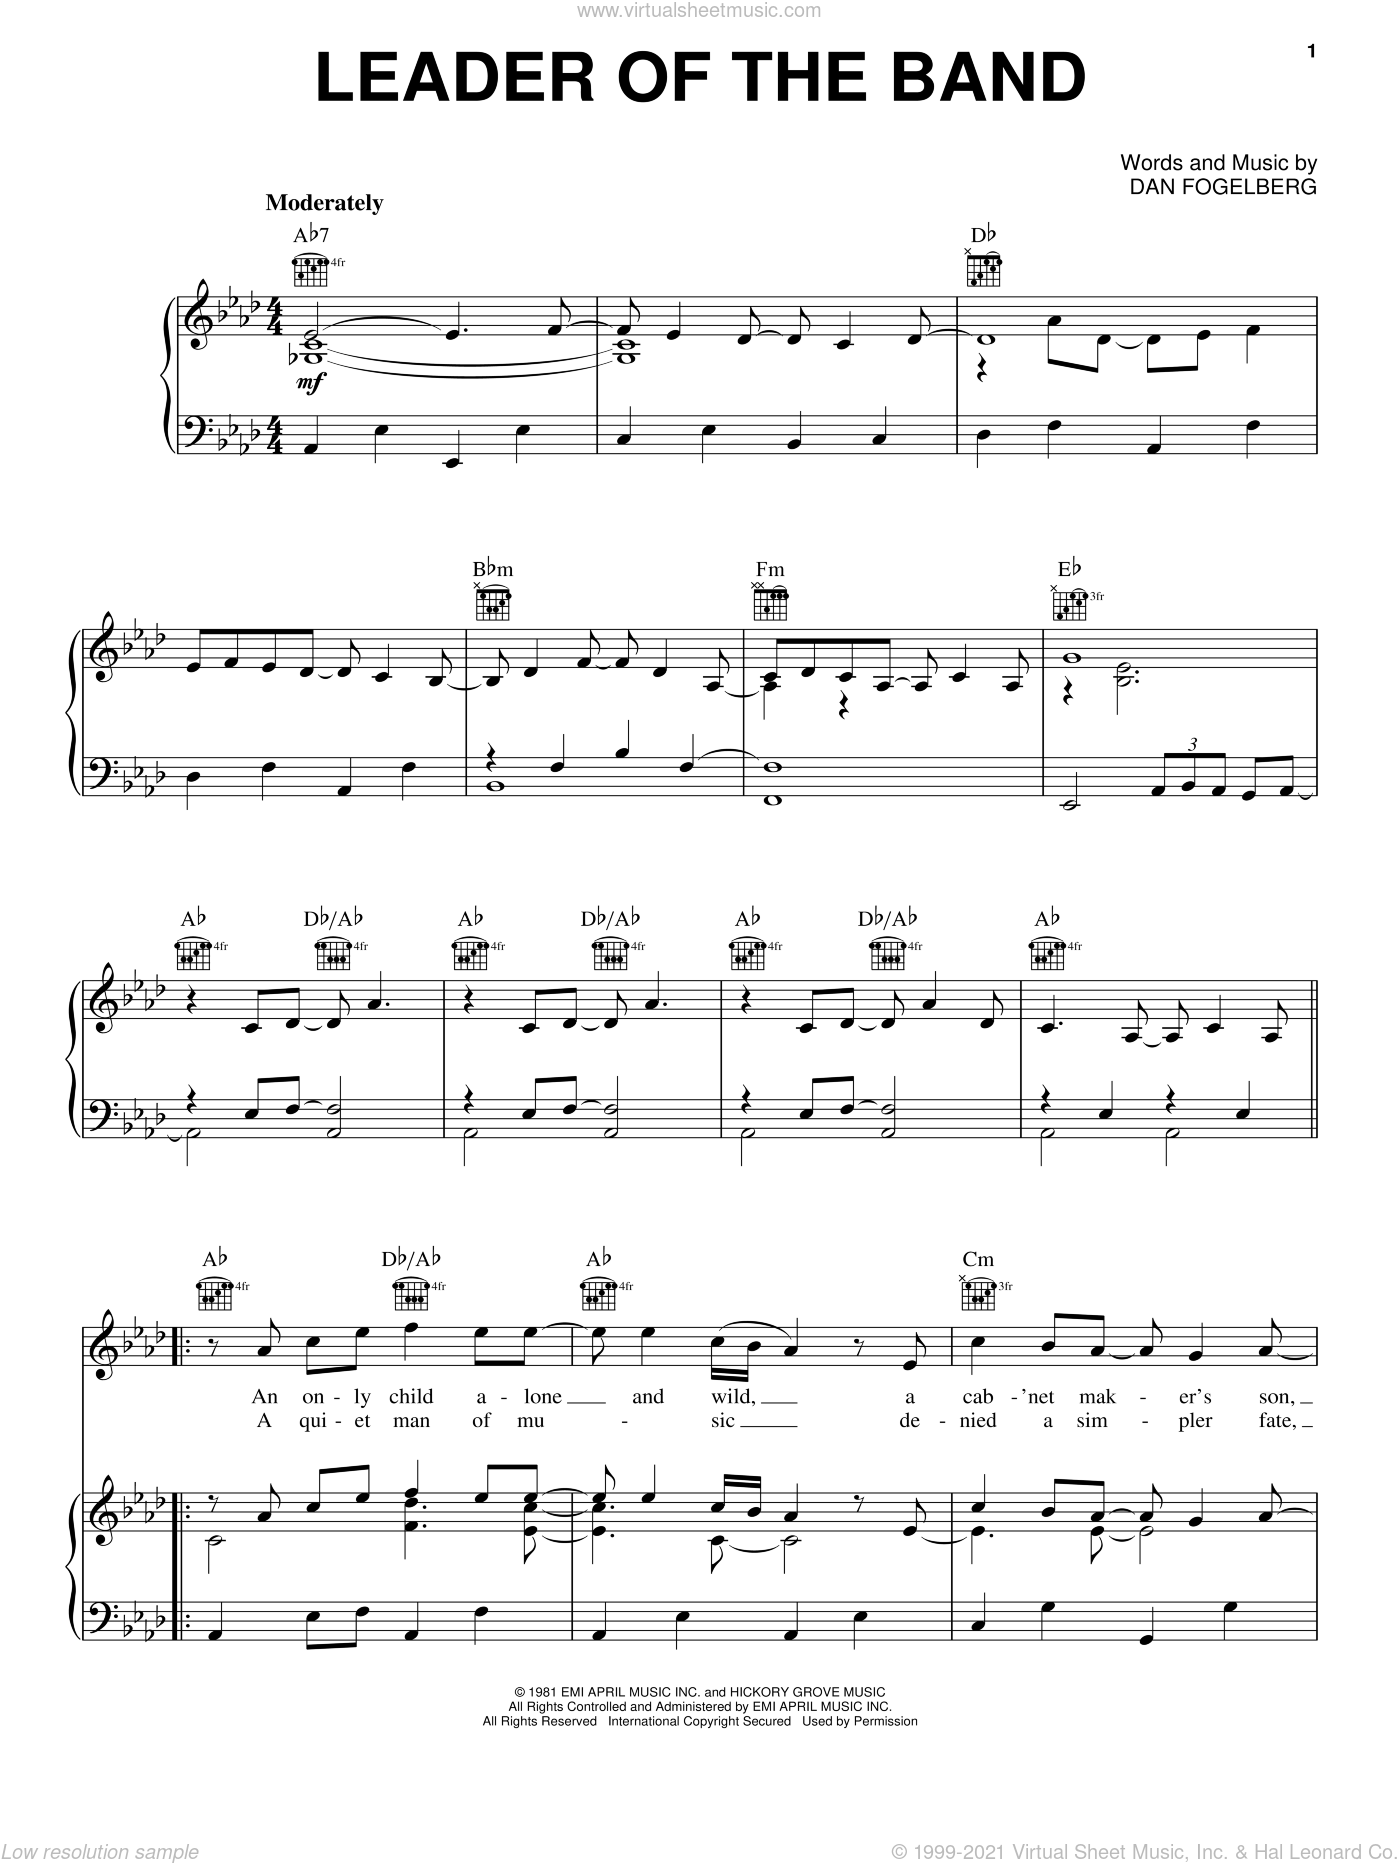 Leader Of The Band sheet music for voice, piano or guitar by Dan Fogelberg, intermediate skill level